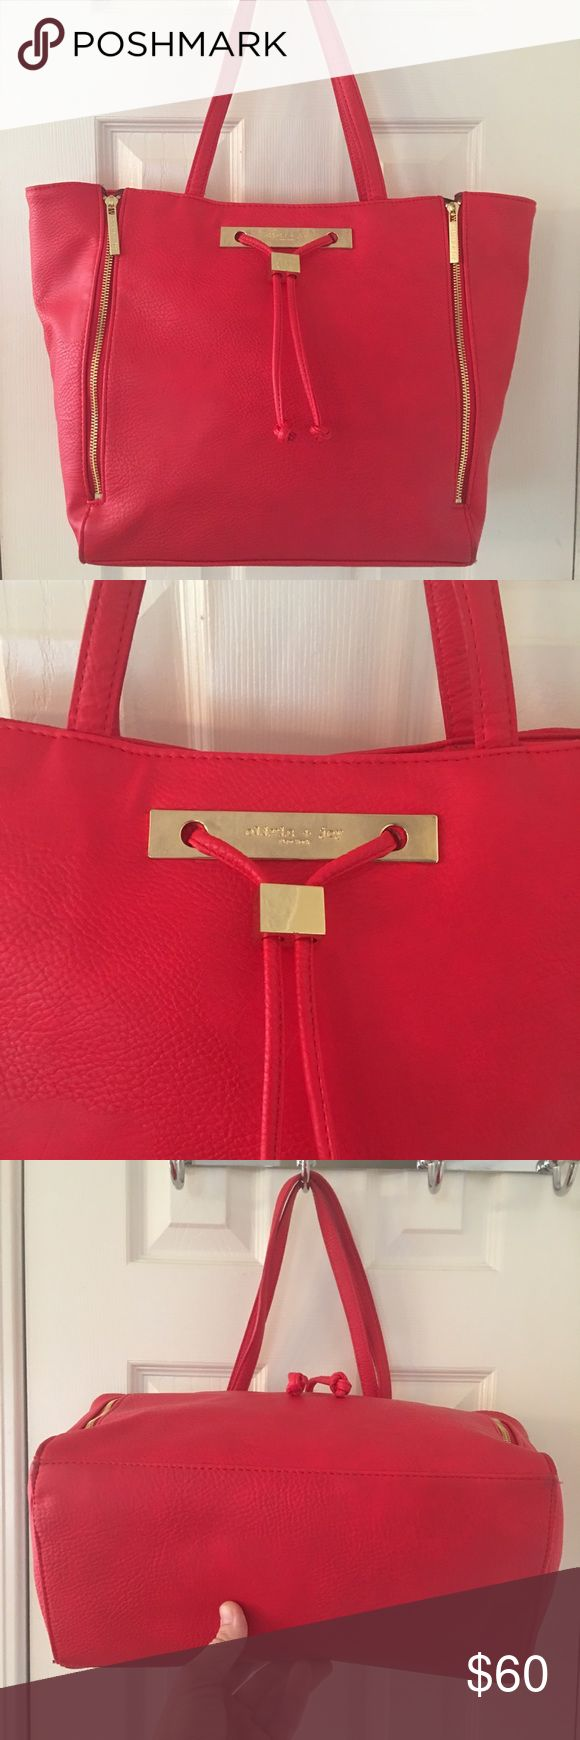 Olivia + Joy Large Pink Gold Tote Bag Mass posting. Will add descriptions shortly Olivia + Joy Bags Totes